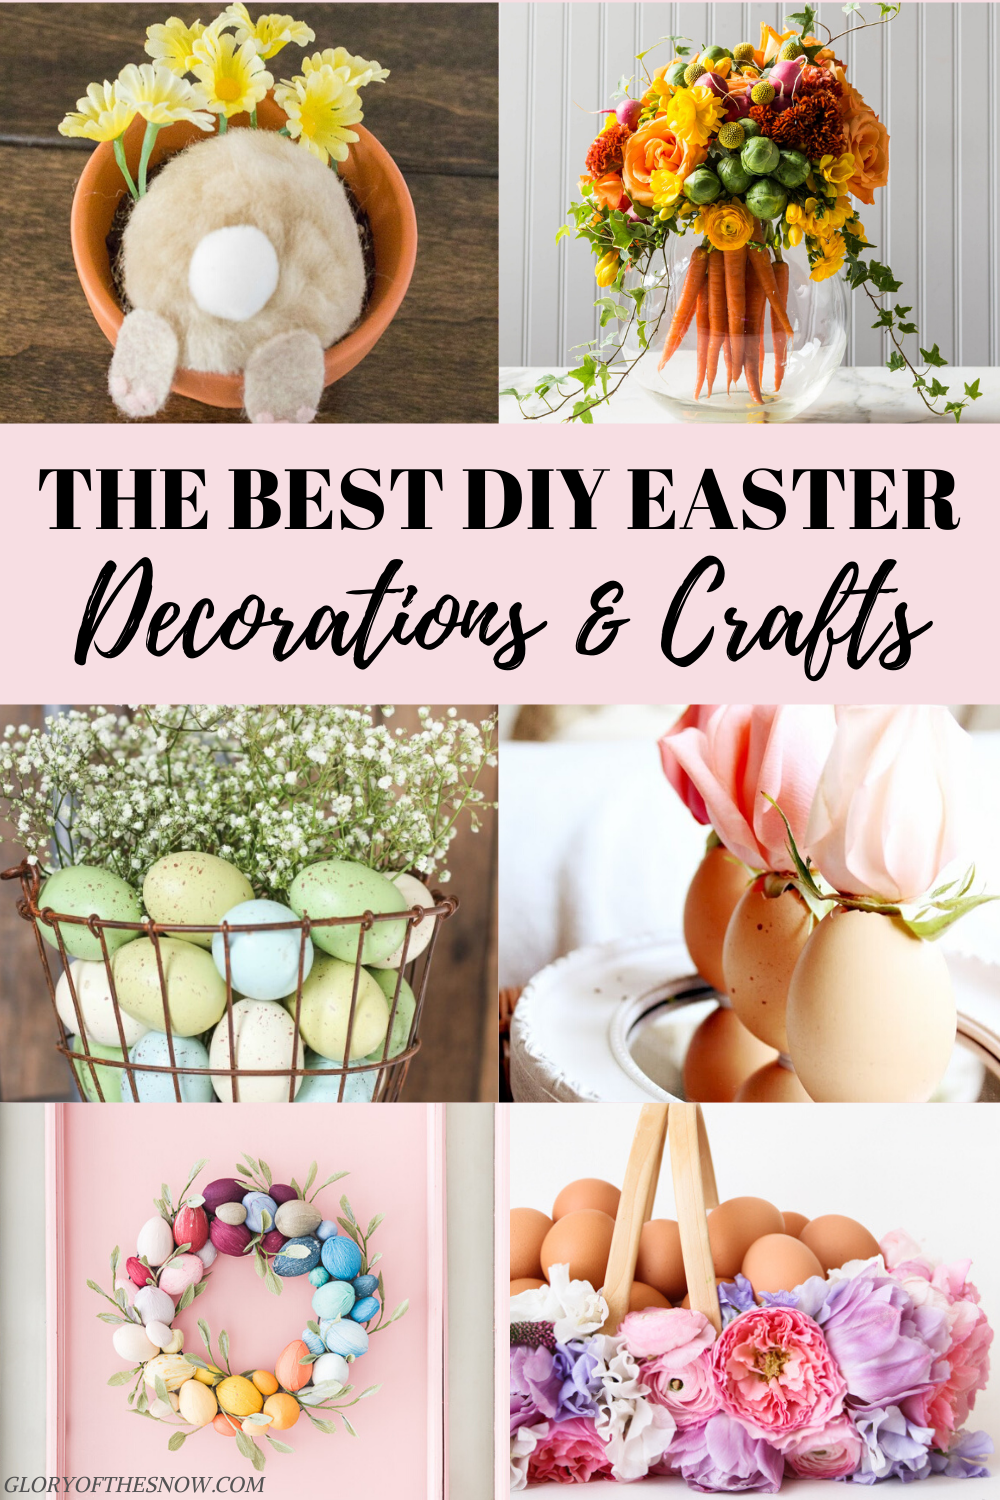 The Most Beautiful Diy Easter Decorating Ideas Glory Of The Snow Diy Easter Decorations Easter Diy Rustic Easter Decor